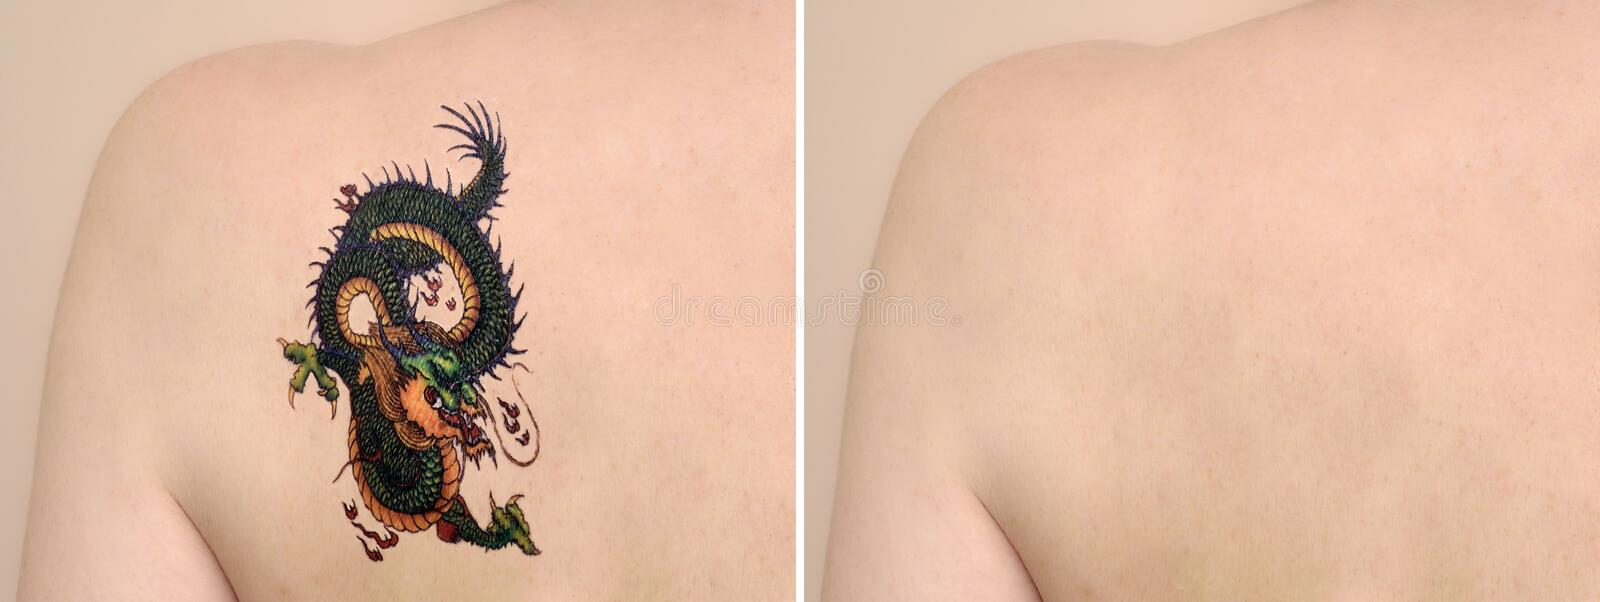 Back of a woman before and after laser tattoo removal treatment. Woman with tattoo on her back. Laser tattoo removal before and after stock photos